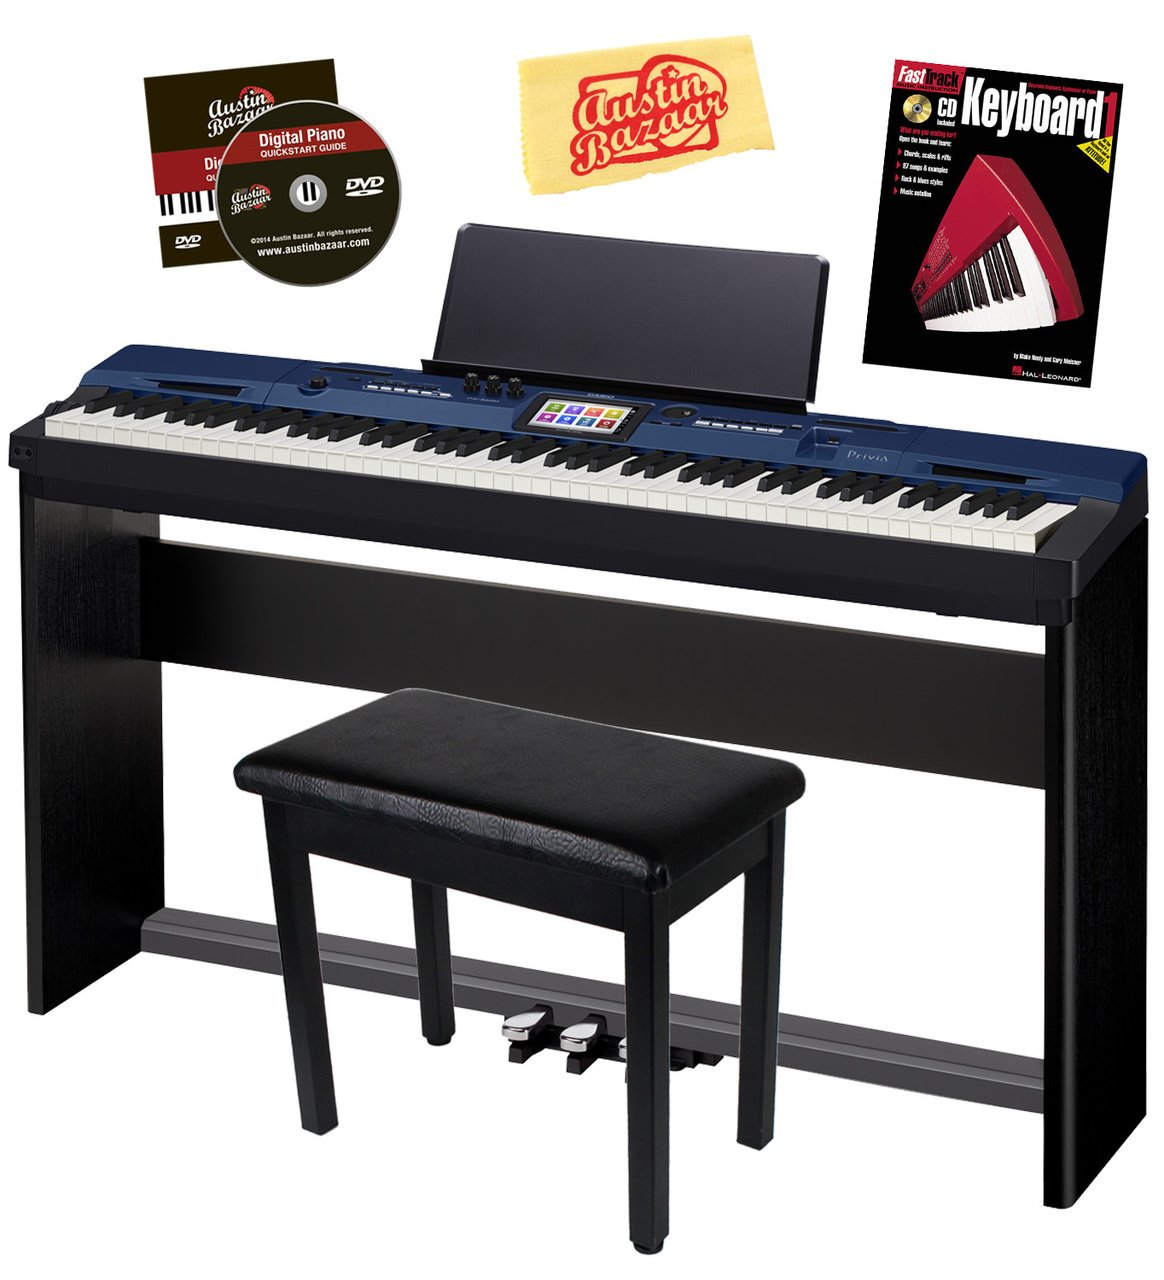 Casio Privia PX-560 Digital Piano - Blue Bundle with CS-67 Stand, SP-33 Pedal, Furniture Bench, Instructional Book, Austin Bazaar Instructional DVD, and Polishing Cloth by Casio